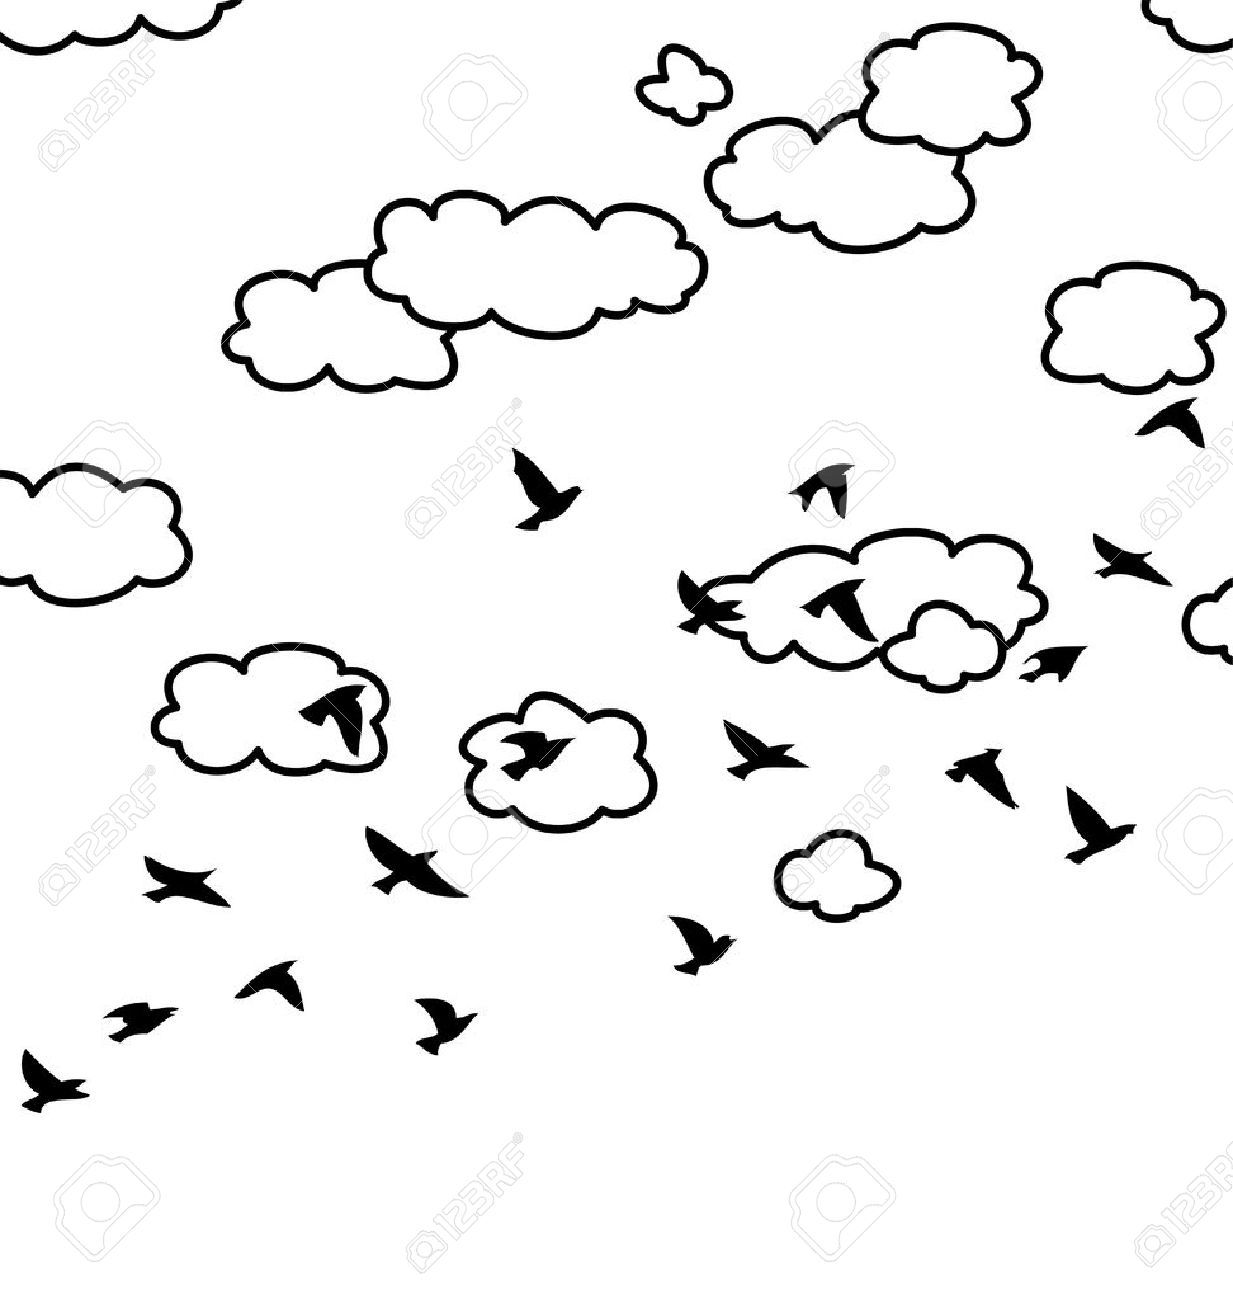 Sky clipart black and white 2 » Clipart Portal.